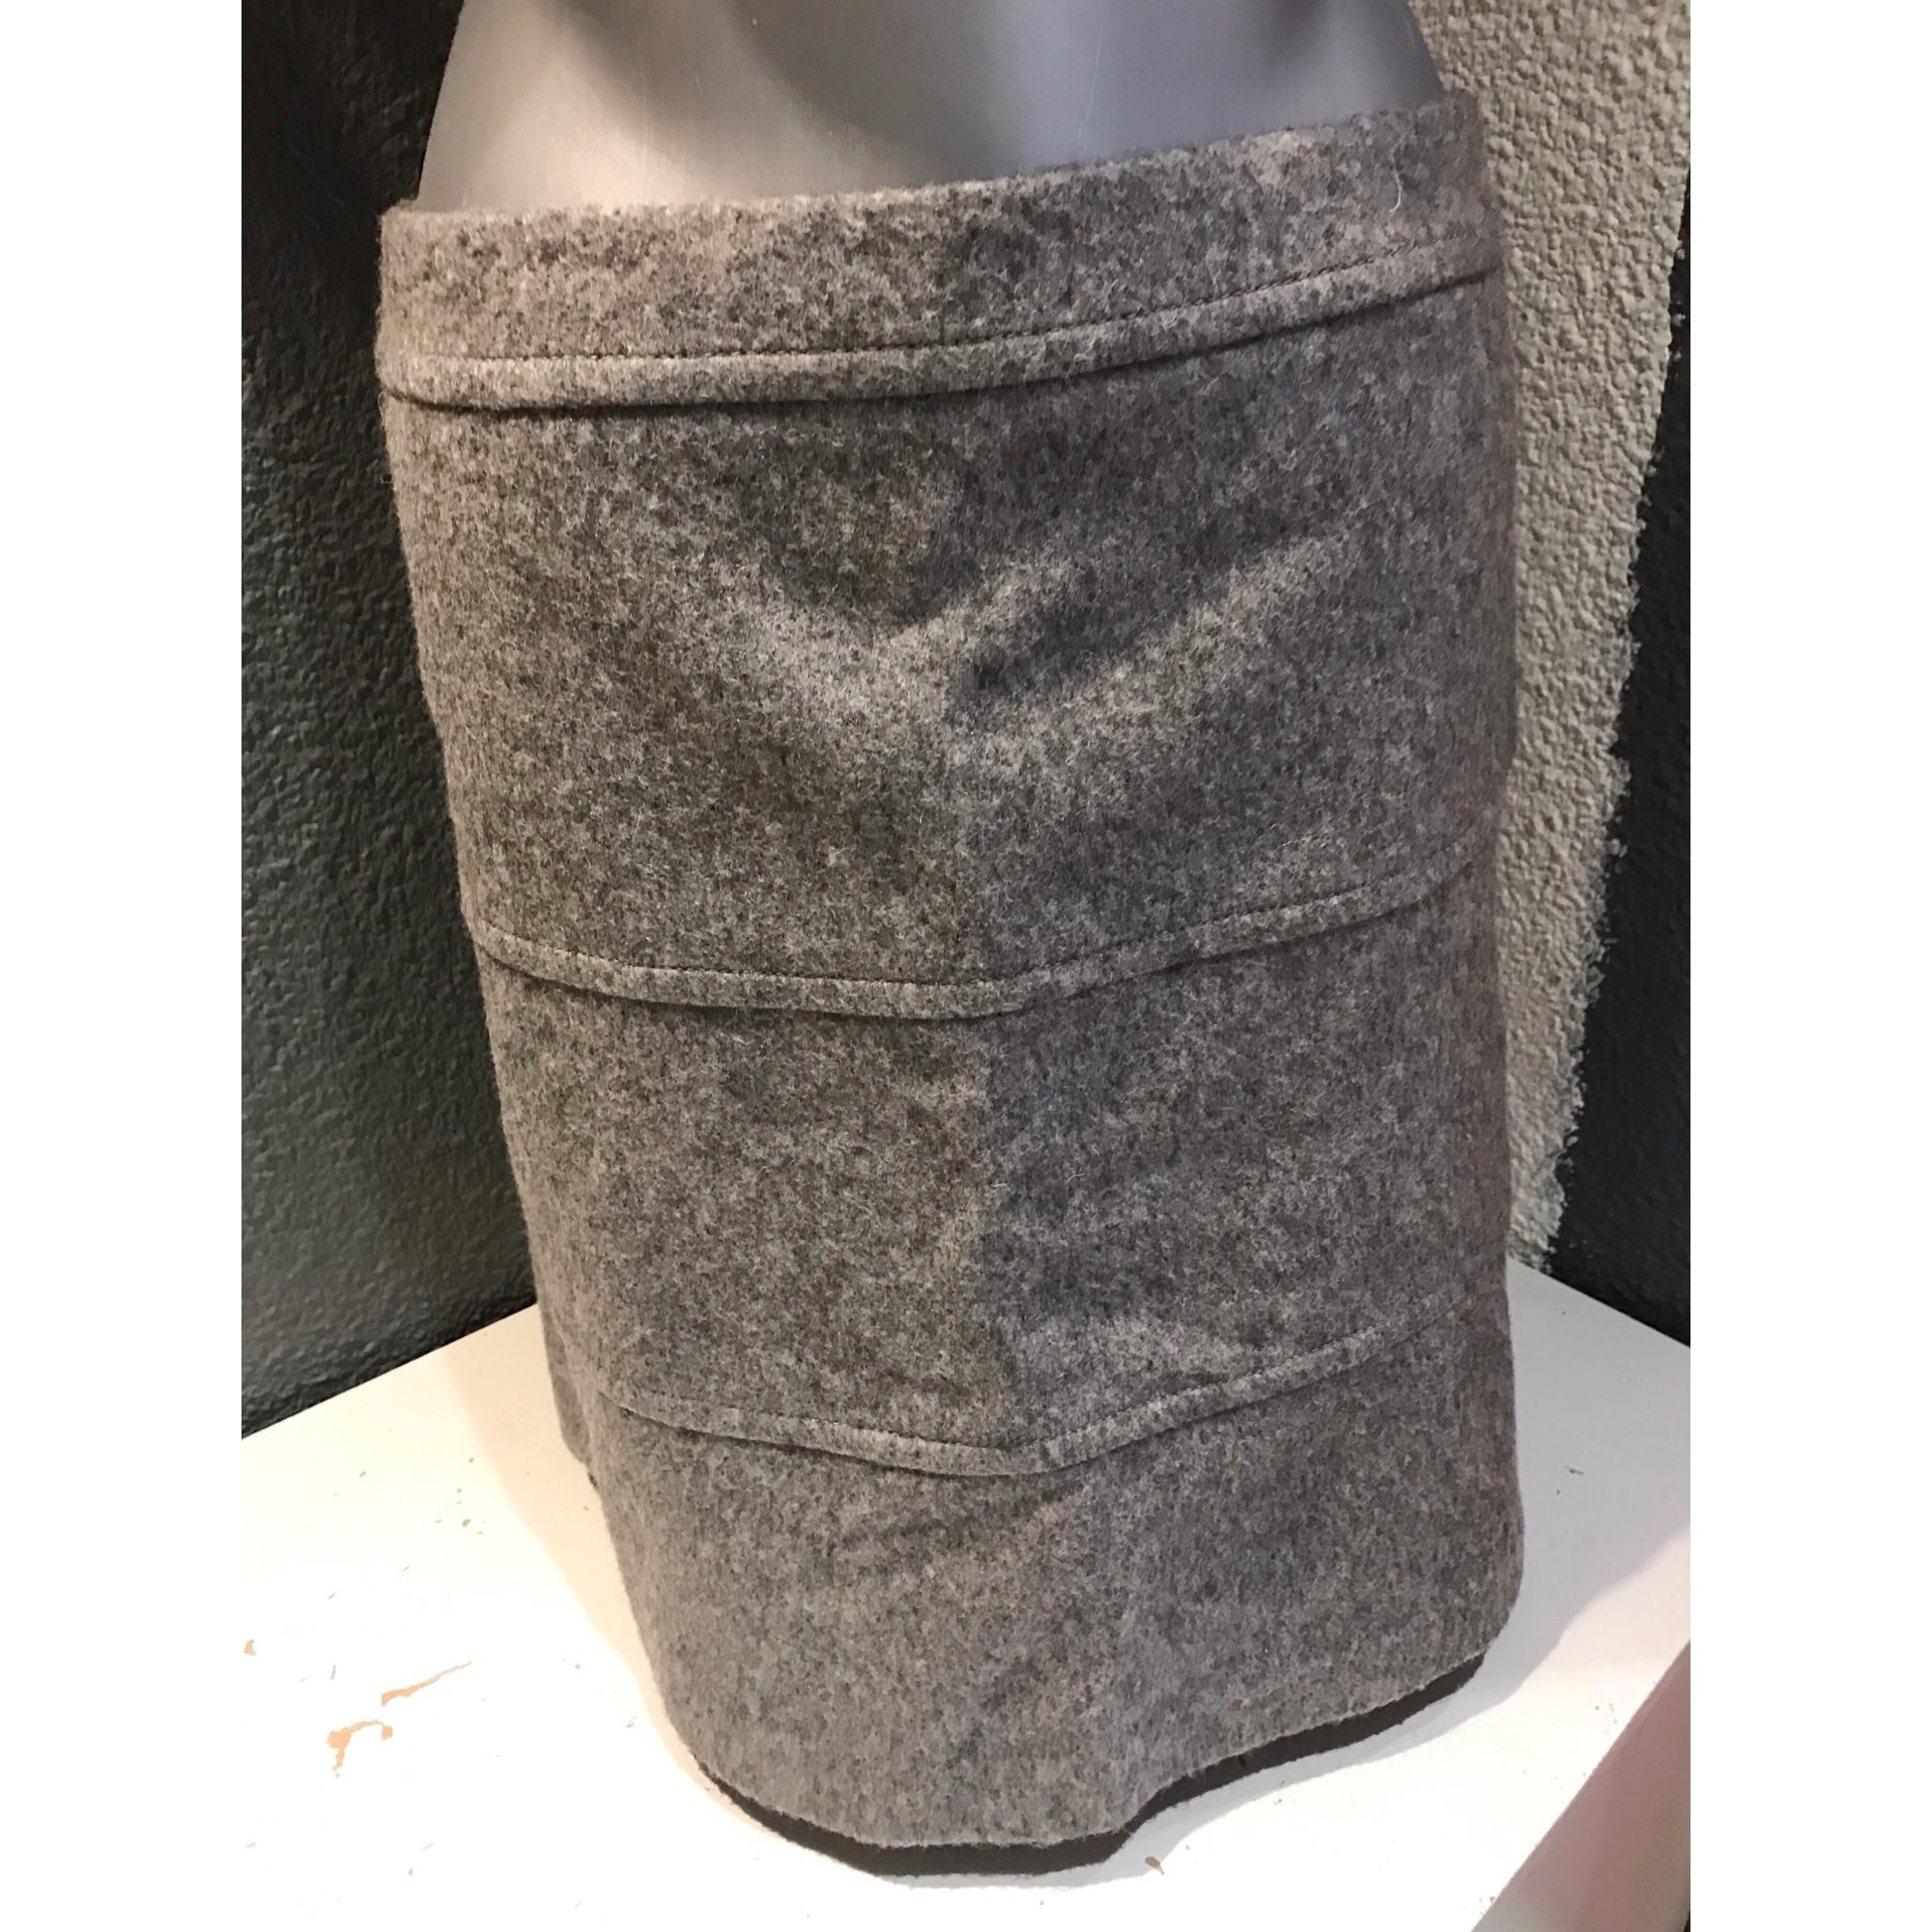 Jupe courte WEEKEND MAX MARA Gris, anthracite